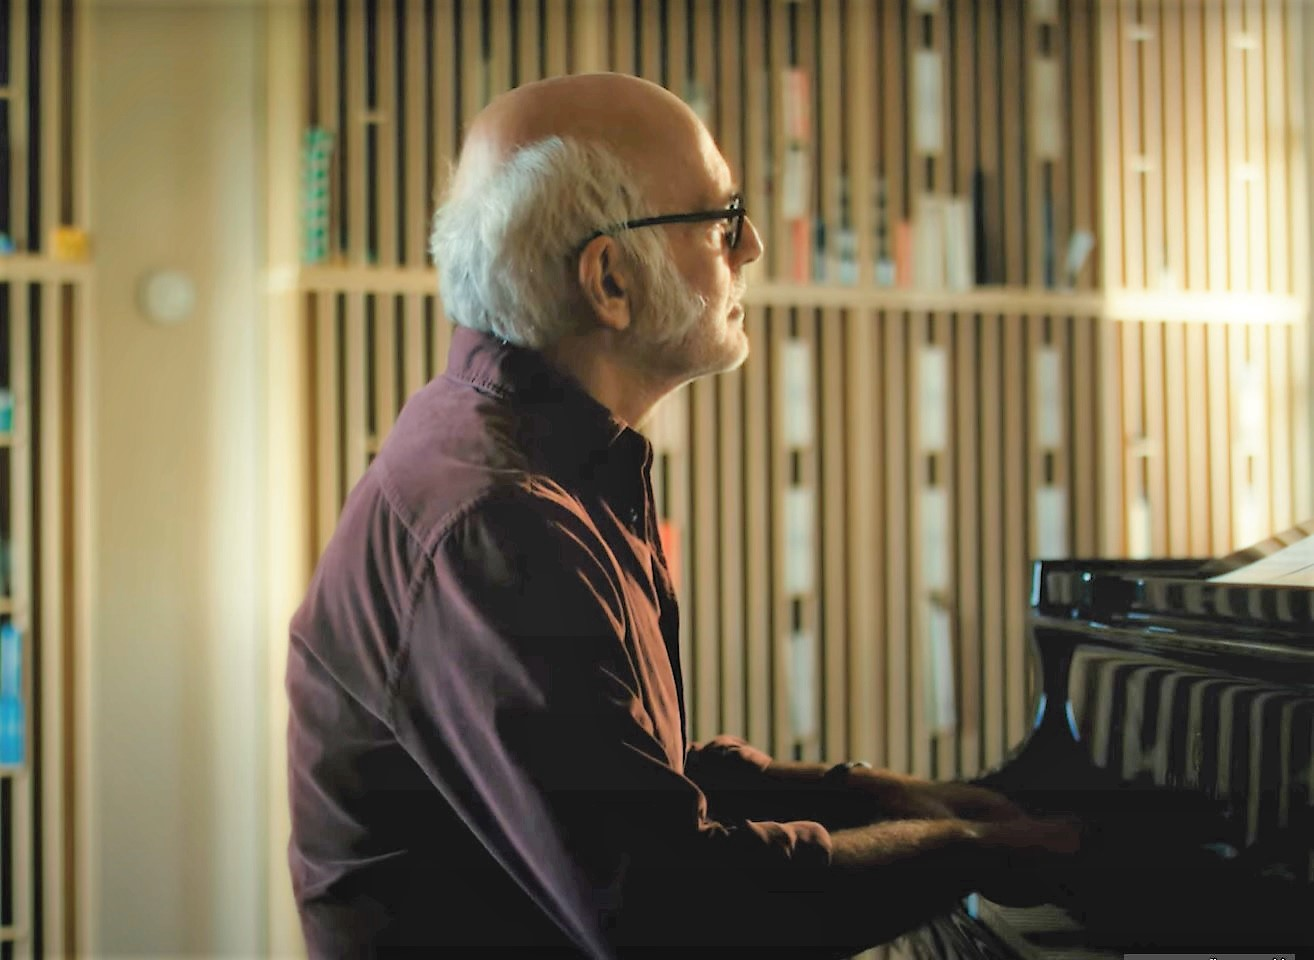 """Ludovico Einaudi playing Luminous (Live) at home from his new solo album """"Underwater."""""""